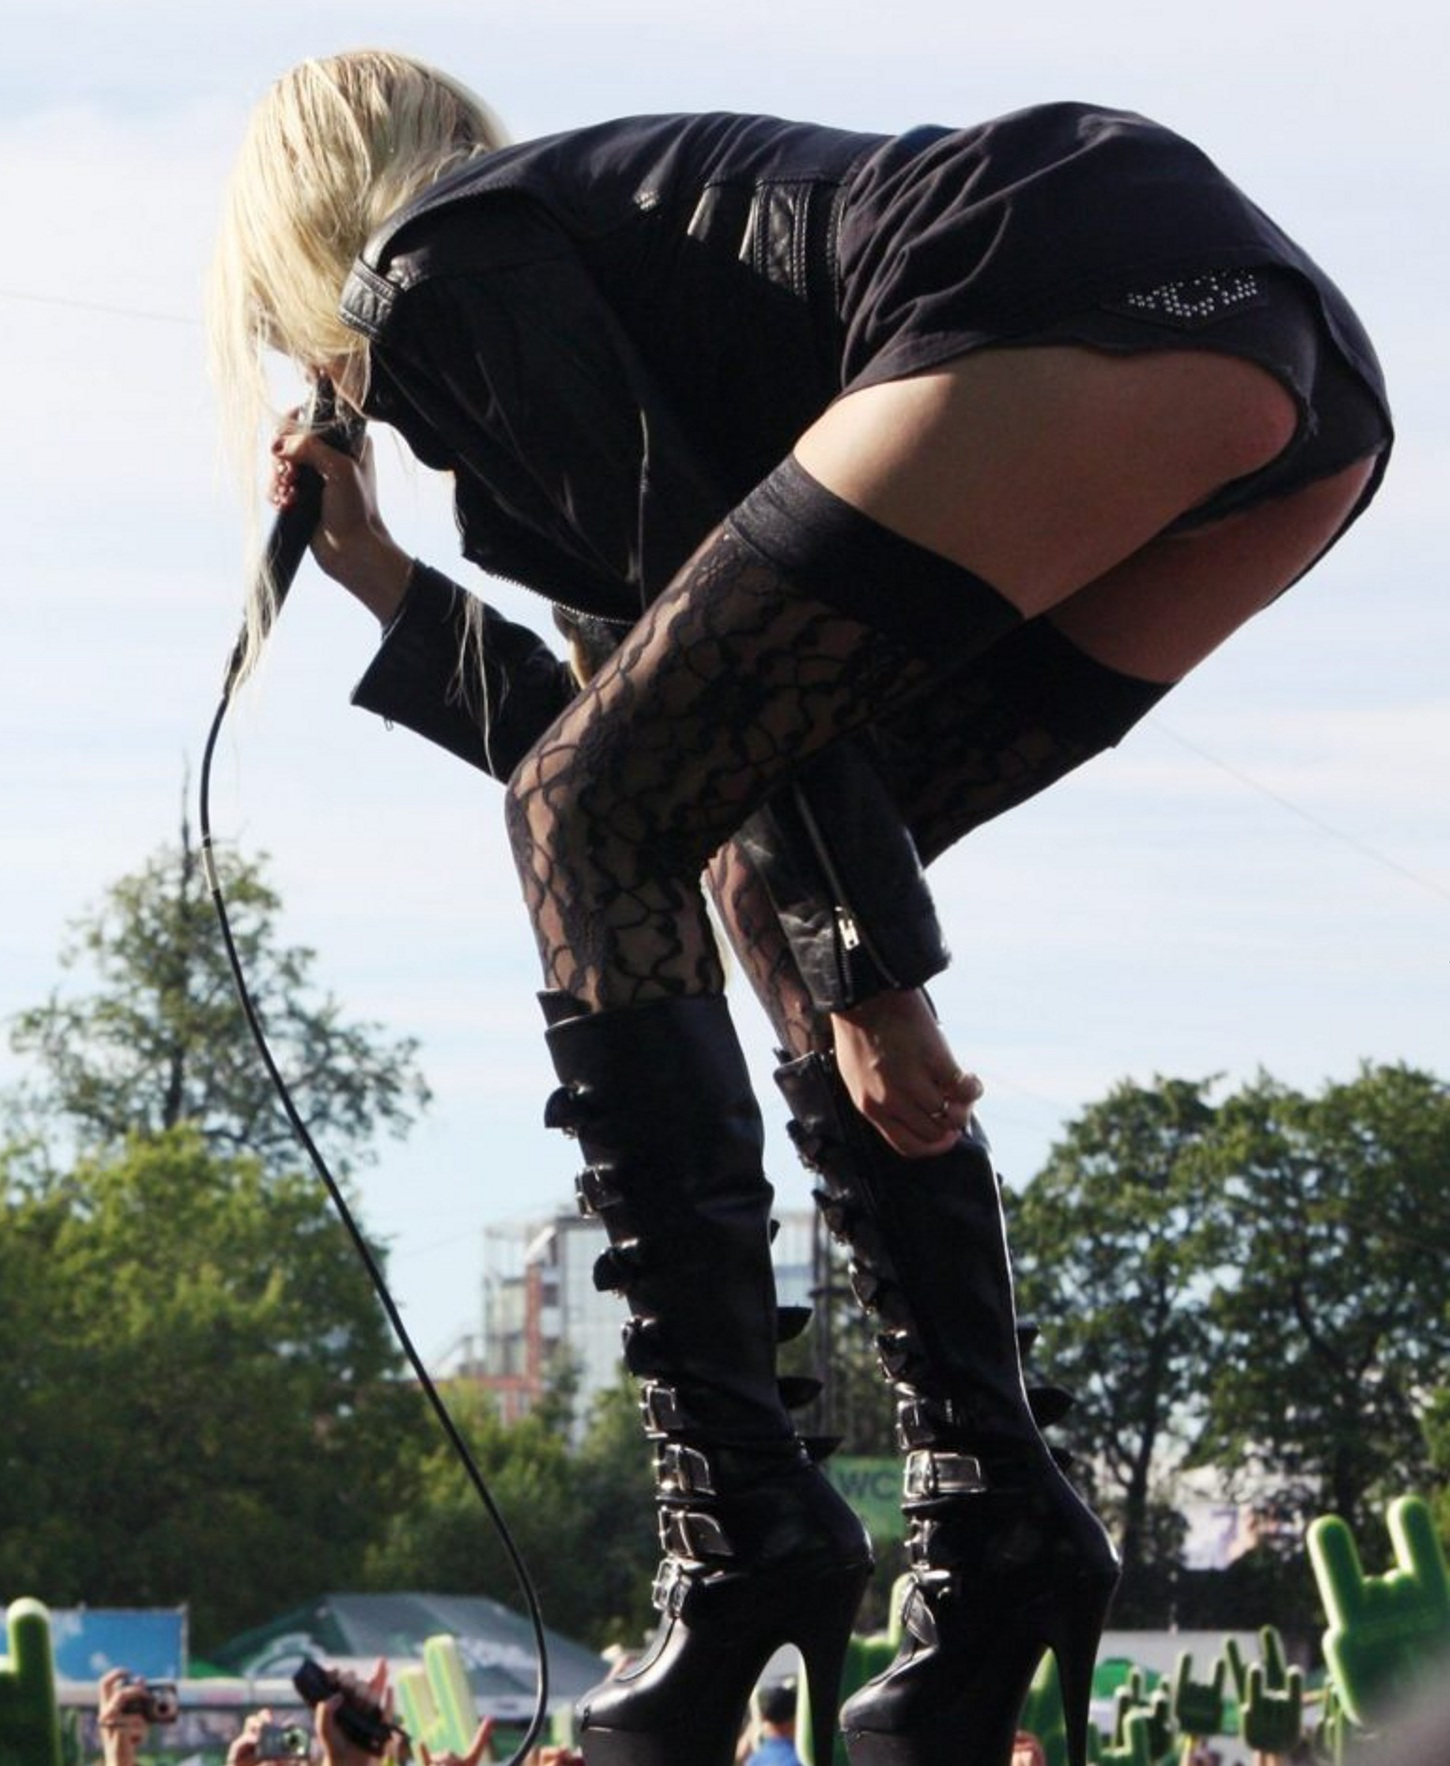 Care To See Taylor Momsen's Newly Barely Legal Vagina Slip?